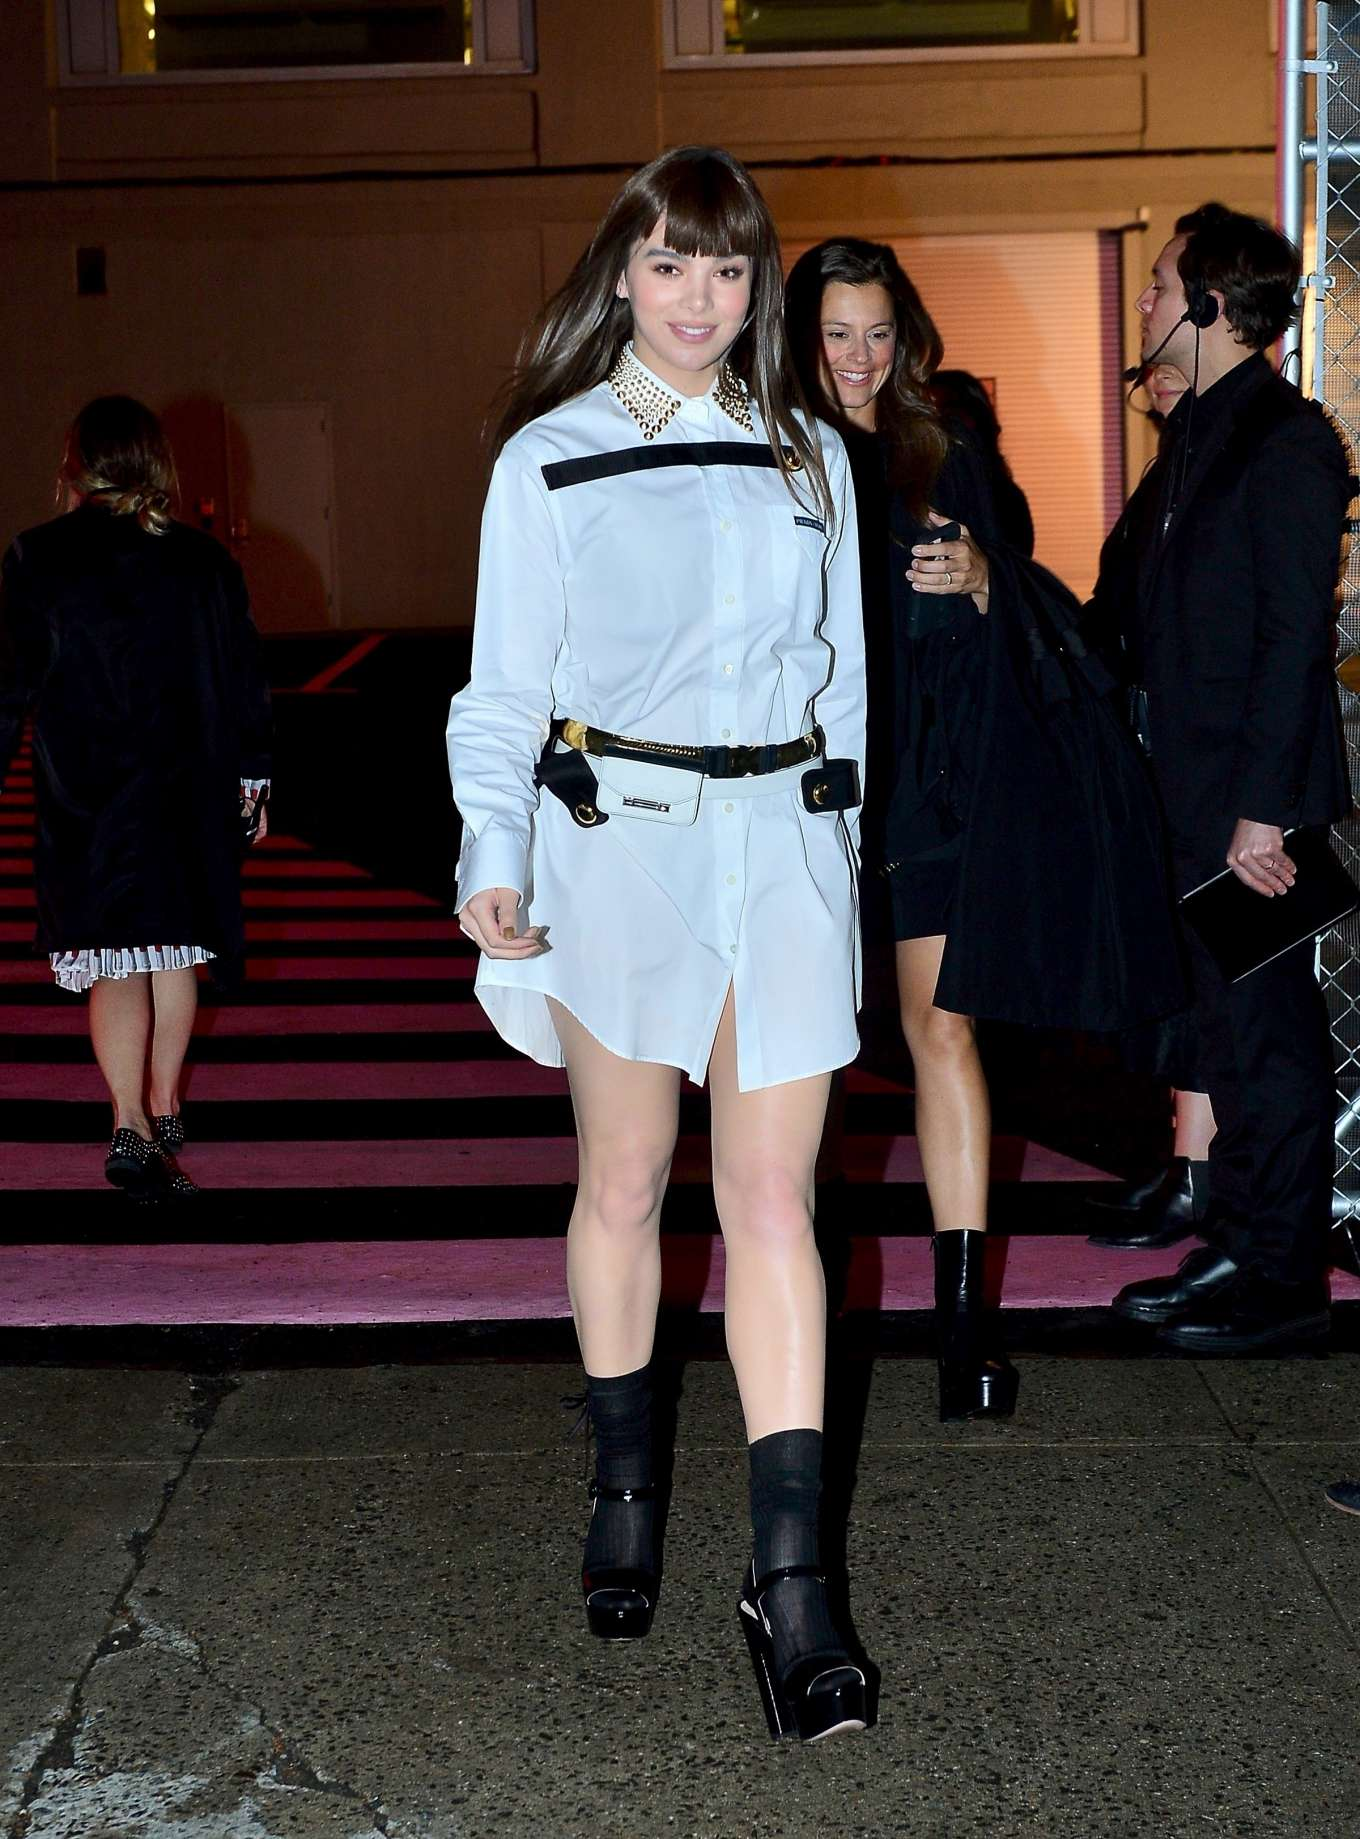 Hailee Steinfeld 2019 : Hailee Steinfeld: leaving the Prada Resort 2020 Collection show in NYC-04